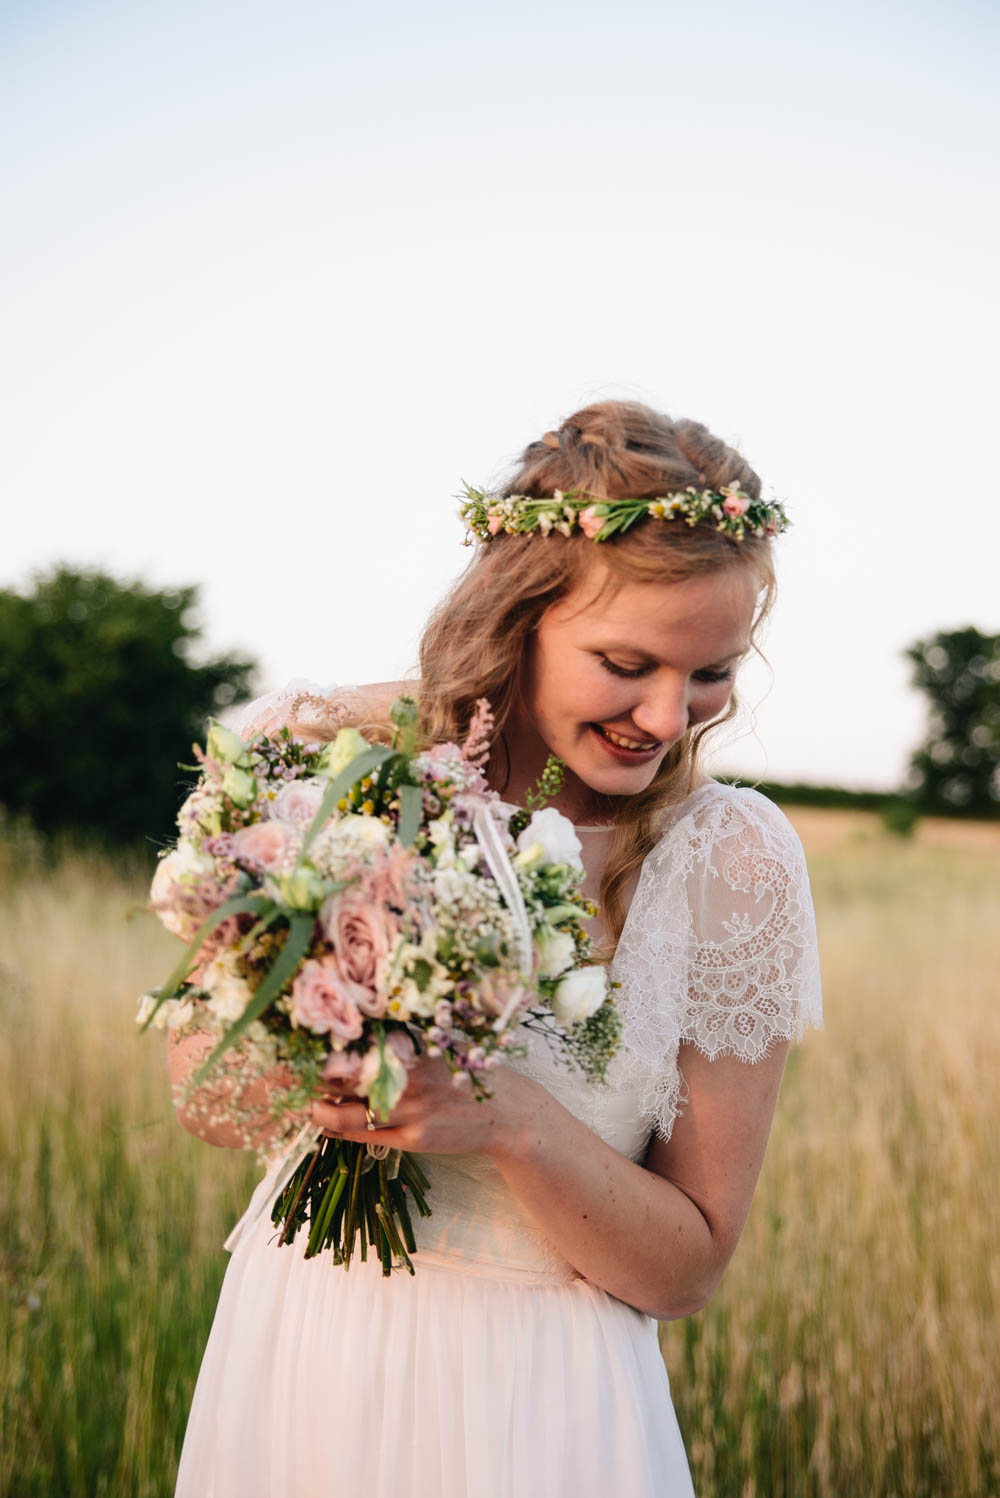 Bride in bespoke lace wedding dress flower crown for a diy marquee image by a izmirmasajfo